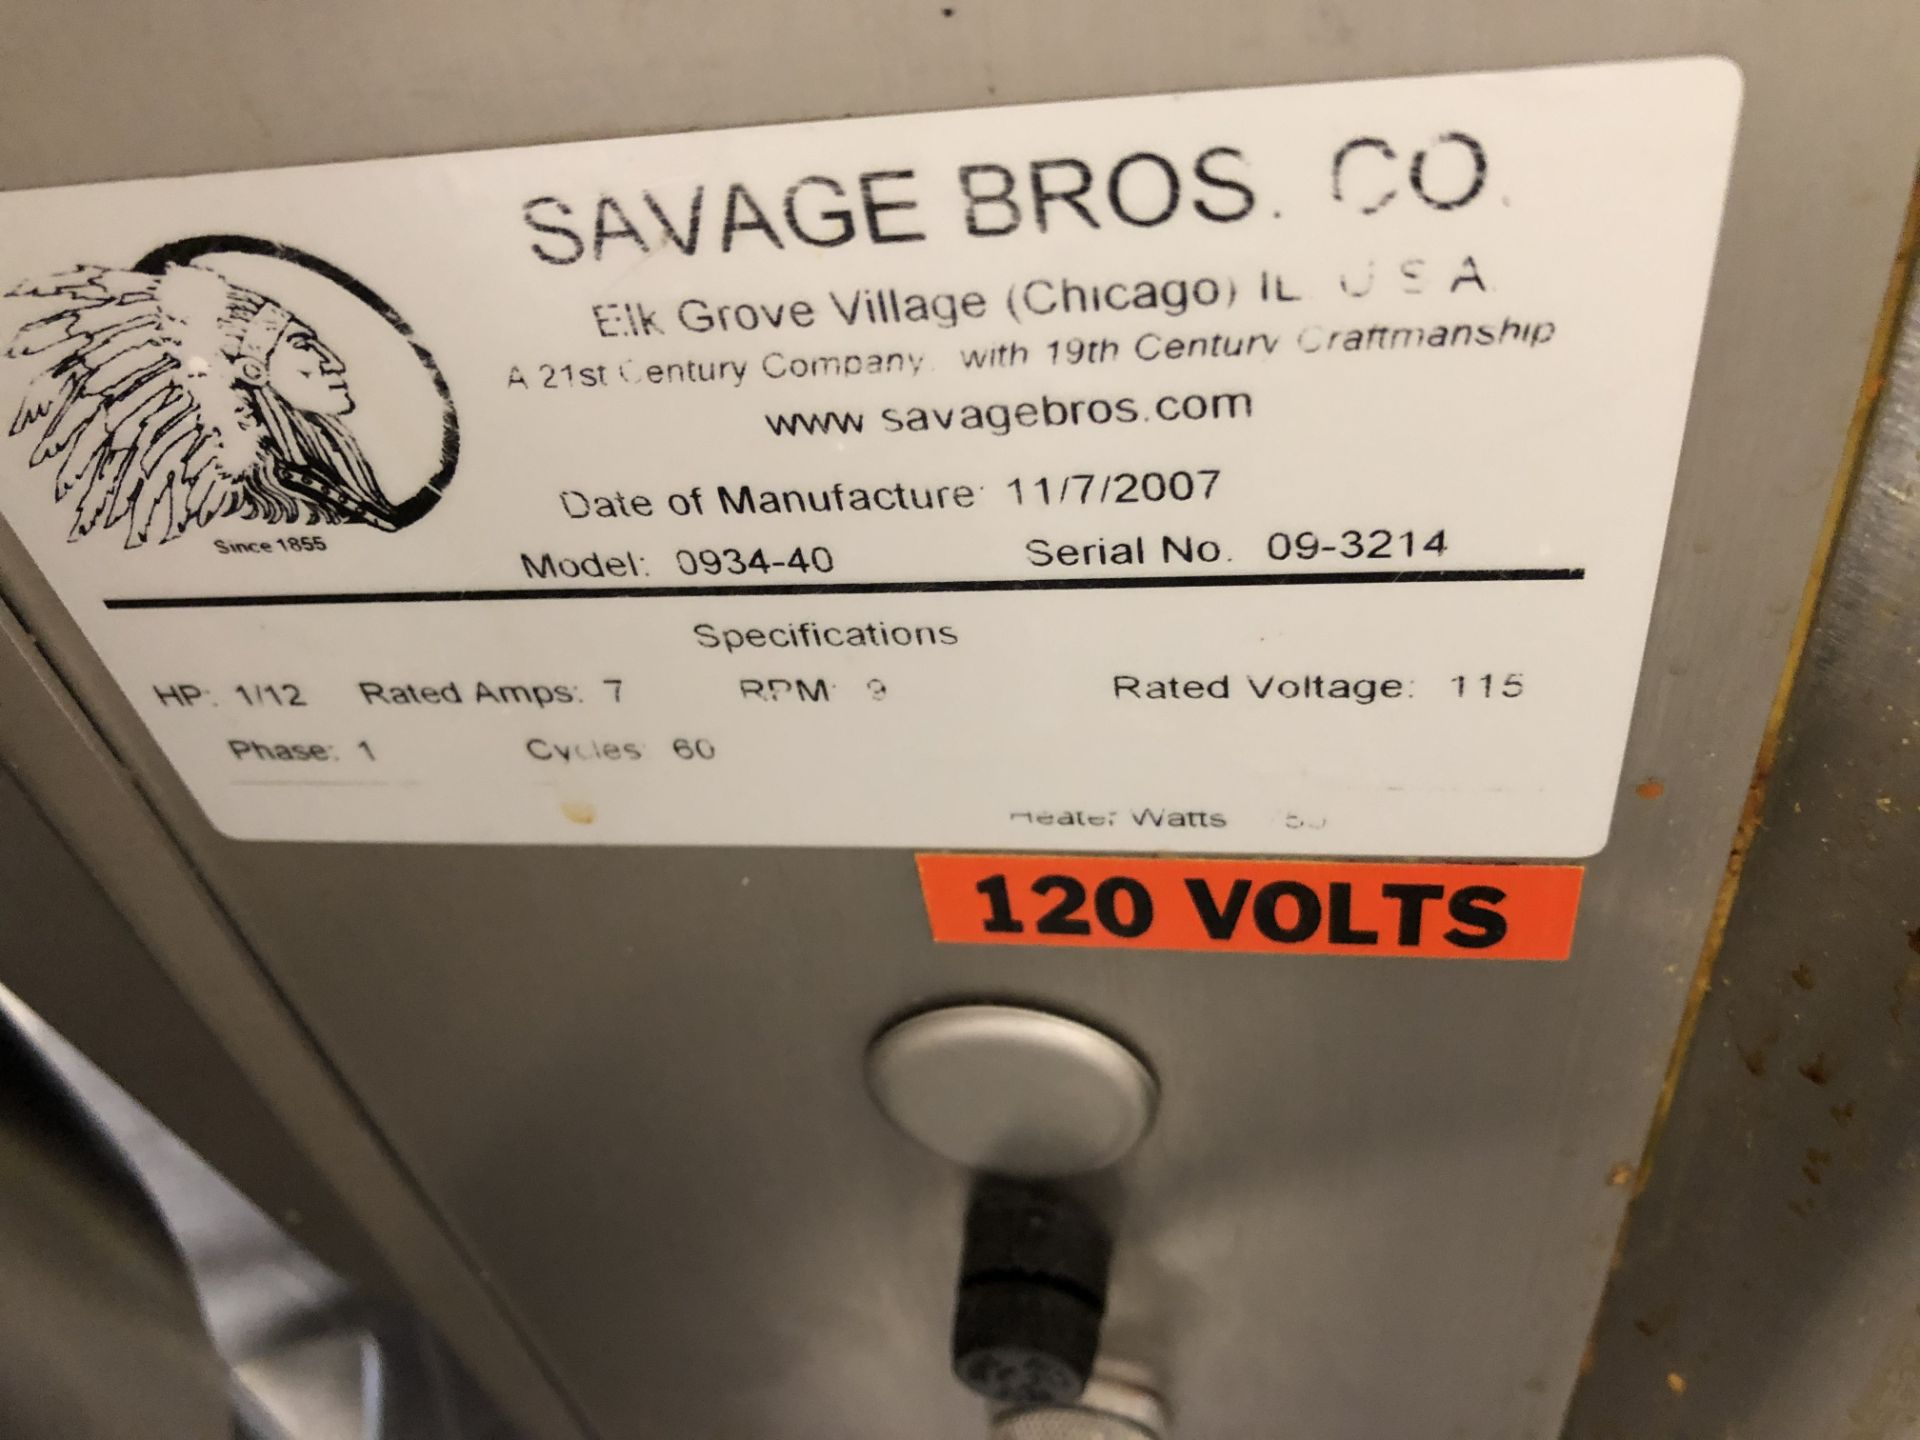 Lot 28 - Savage 50-lb Stainless Steel Chocolate Melter, model 0934-40, jacketed and agitated, electrically